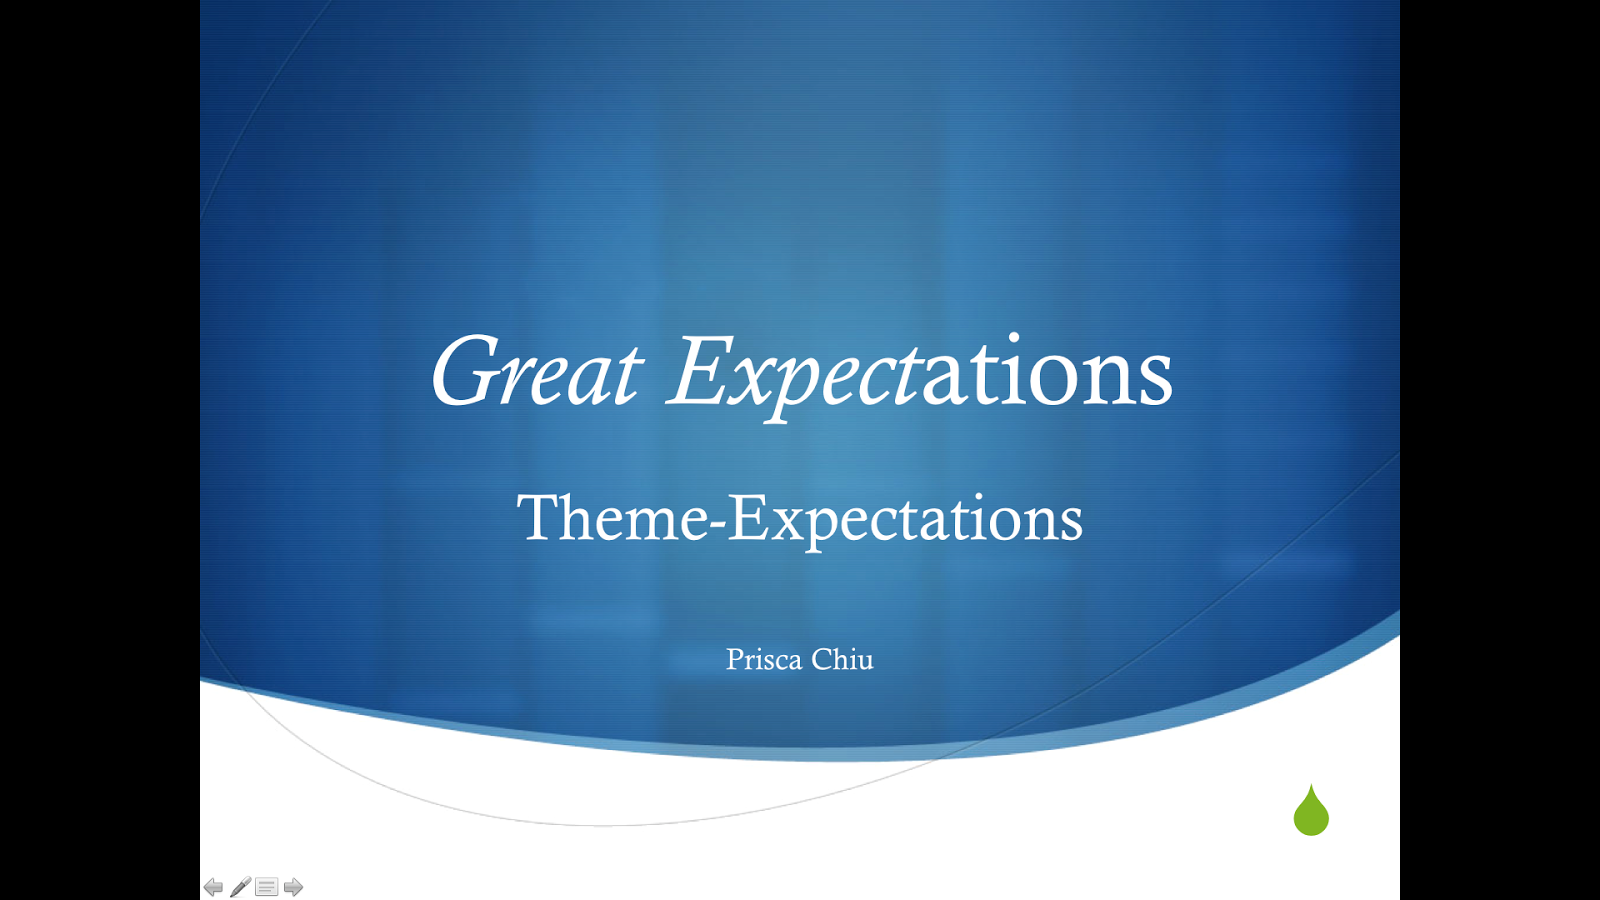 themes in great expectations essay There are many themes to uncover in dicken's great expectations in this article we introduce you to three of the main themes: the elusiveness of dreams, social status vs character, and redemption.